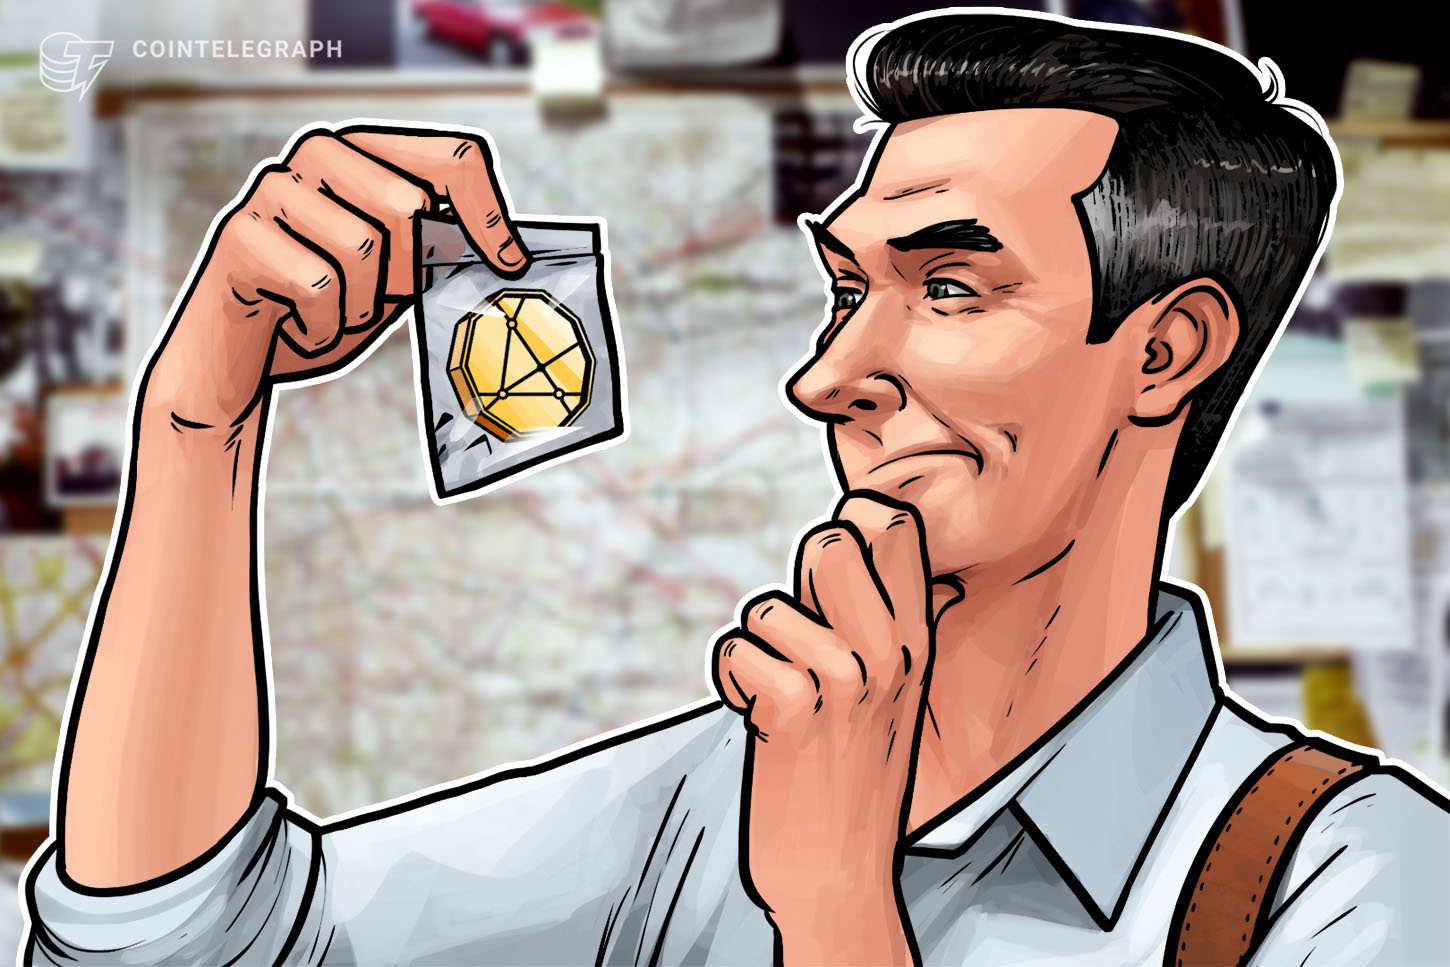 Twitter Hack Shows That Crypto Is Easier to Investigate Than Fiat, Say Industry Law Experts